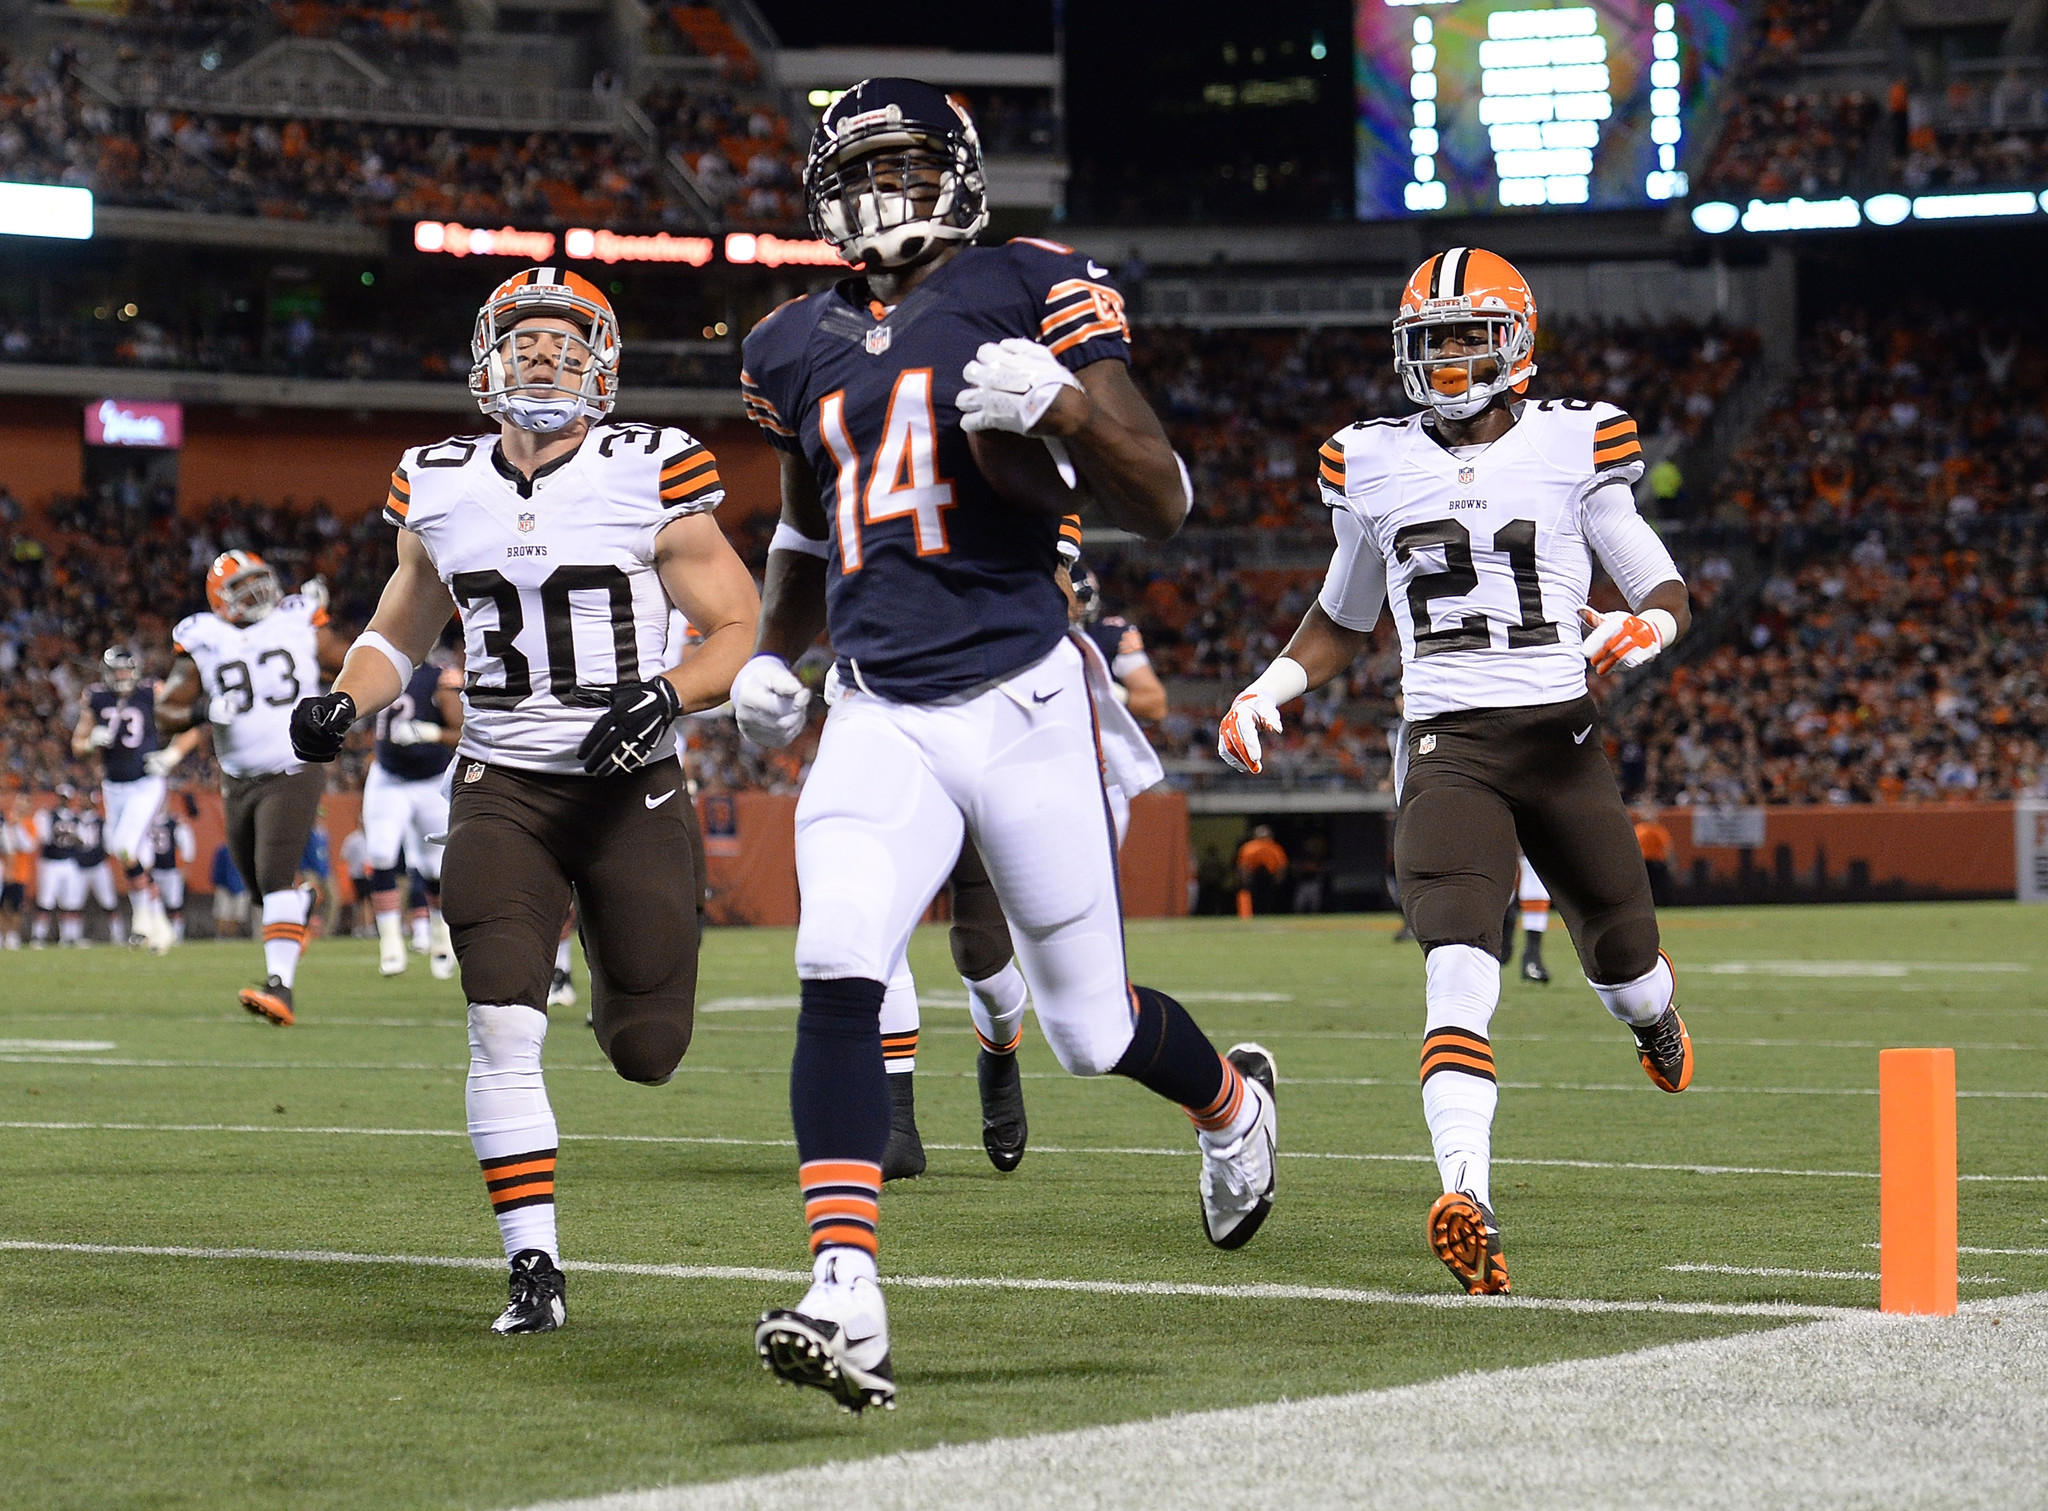 With starters resting, Bears lose 33-13 to Browns